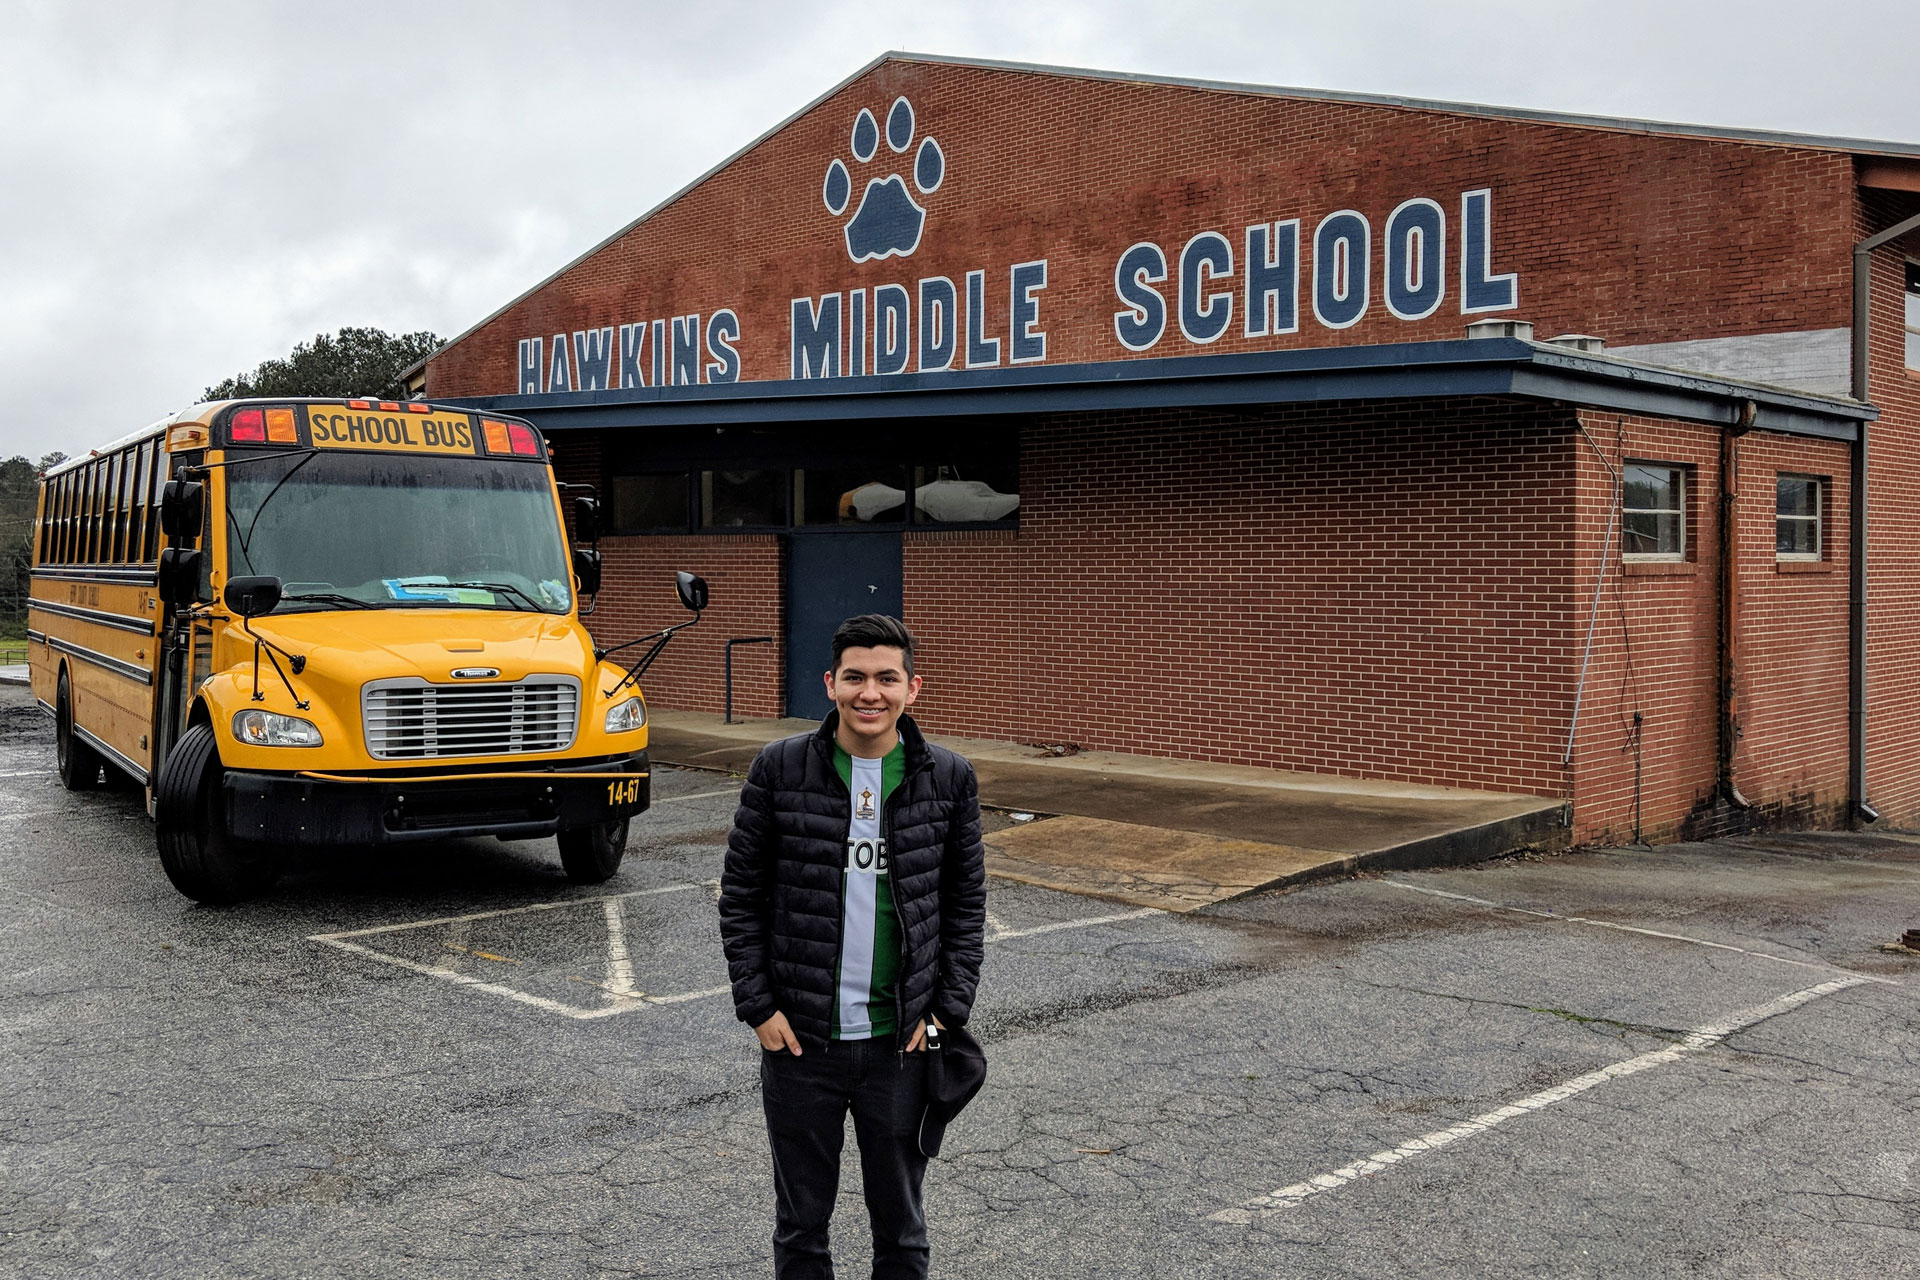 Hawkins Middle School with DTours in Atlanta